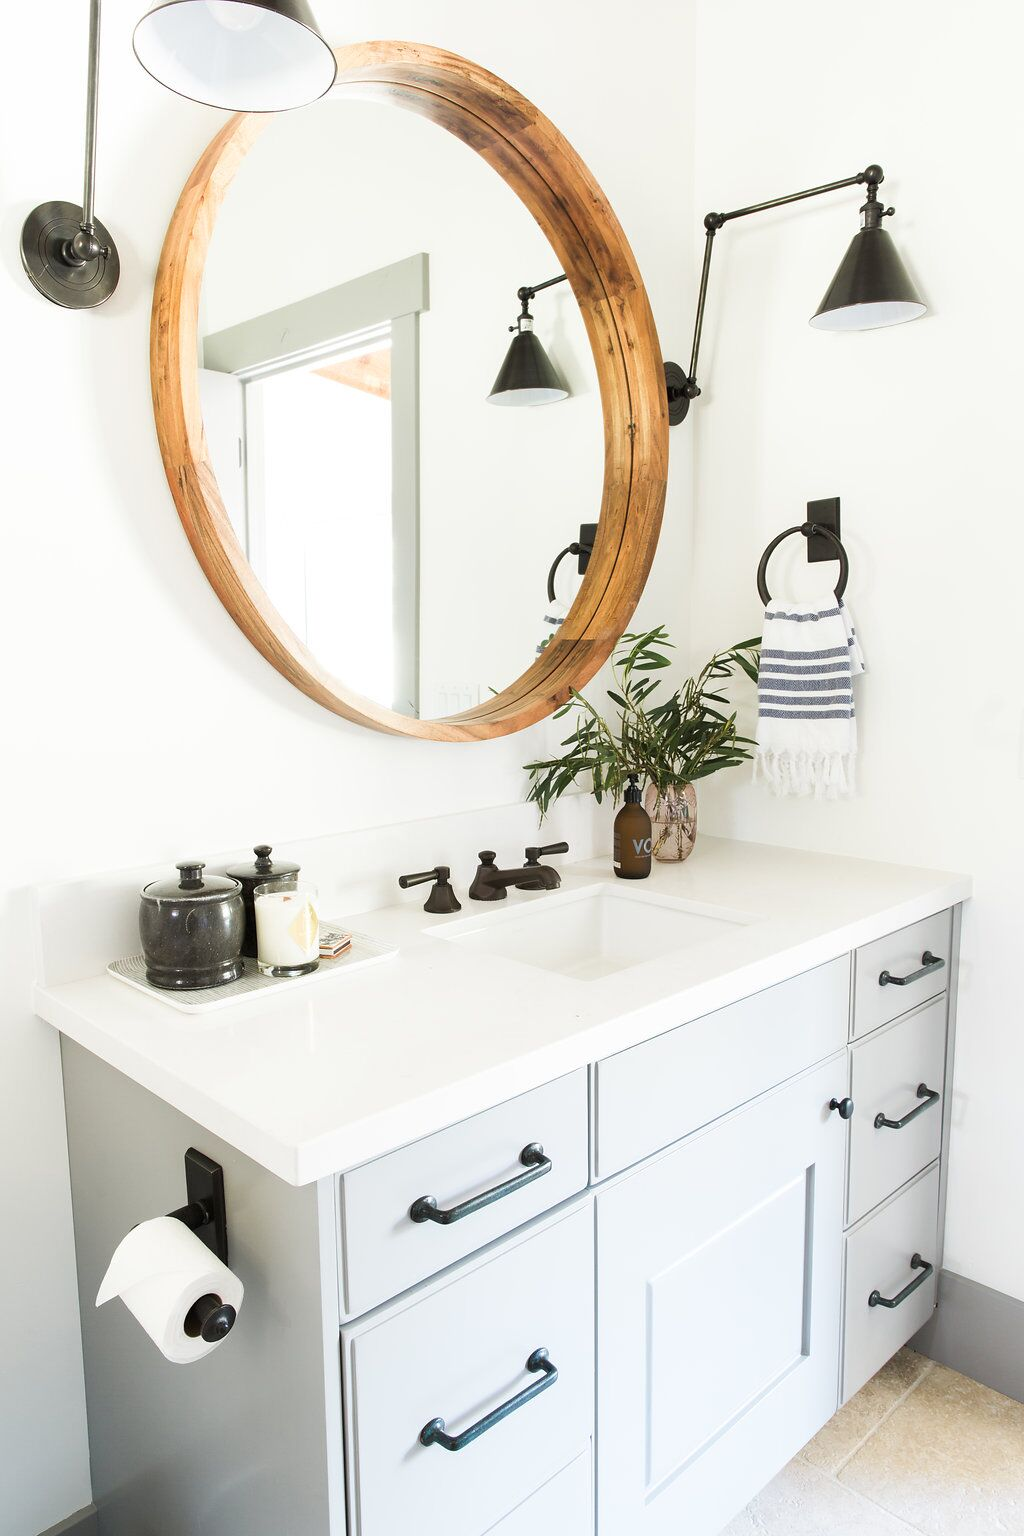 Boston Double Arm Sconce  +  Acacia Wood Mirror   (from the    Park City Canyons Remodel   )